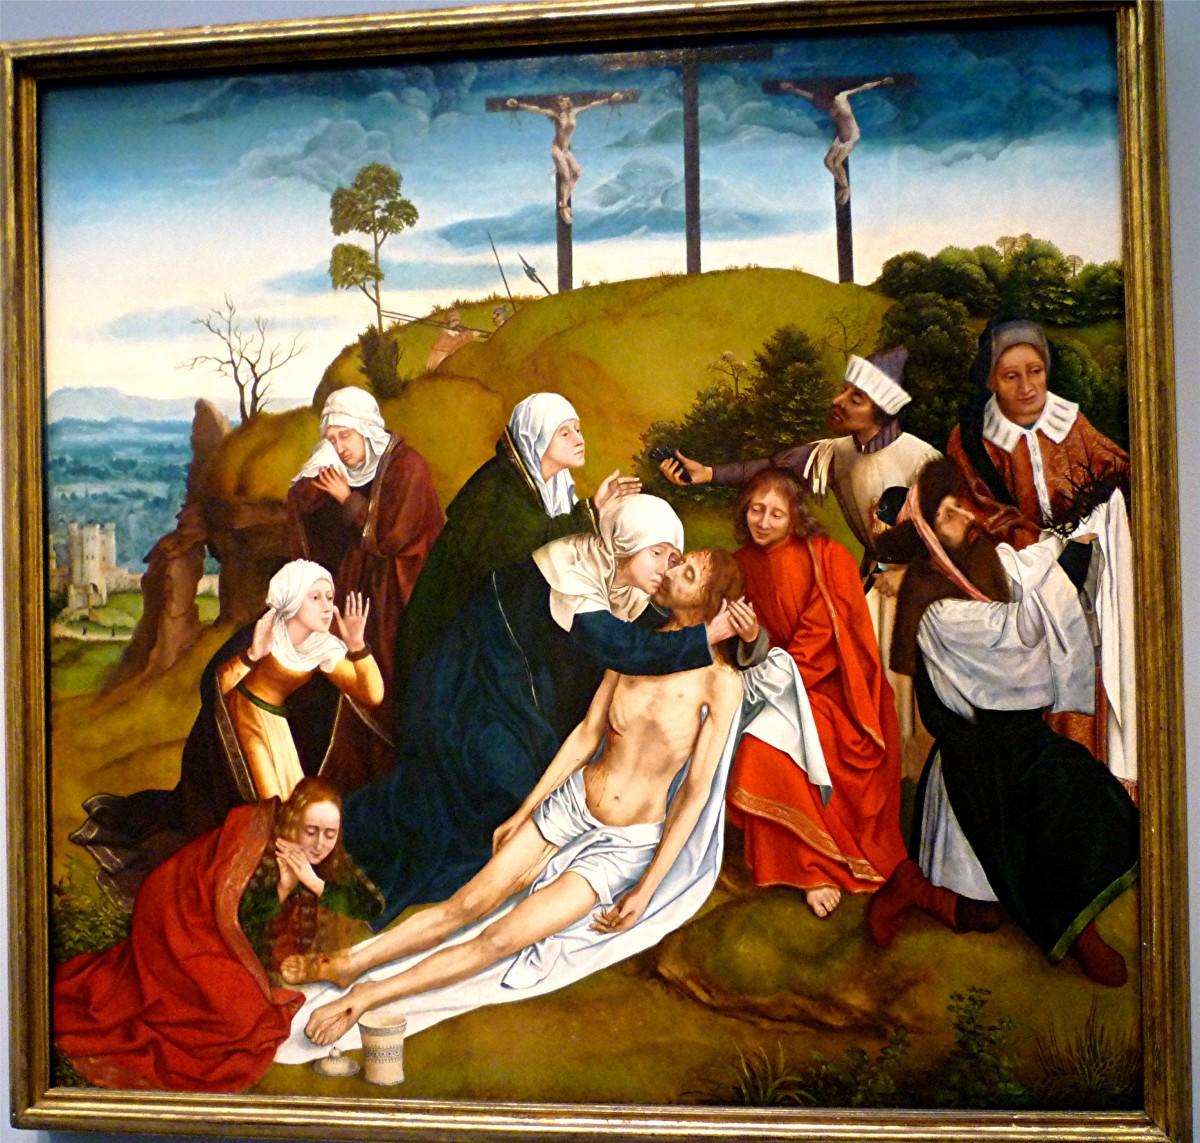 Lamentation attributed to Quentin Massys